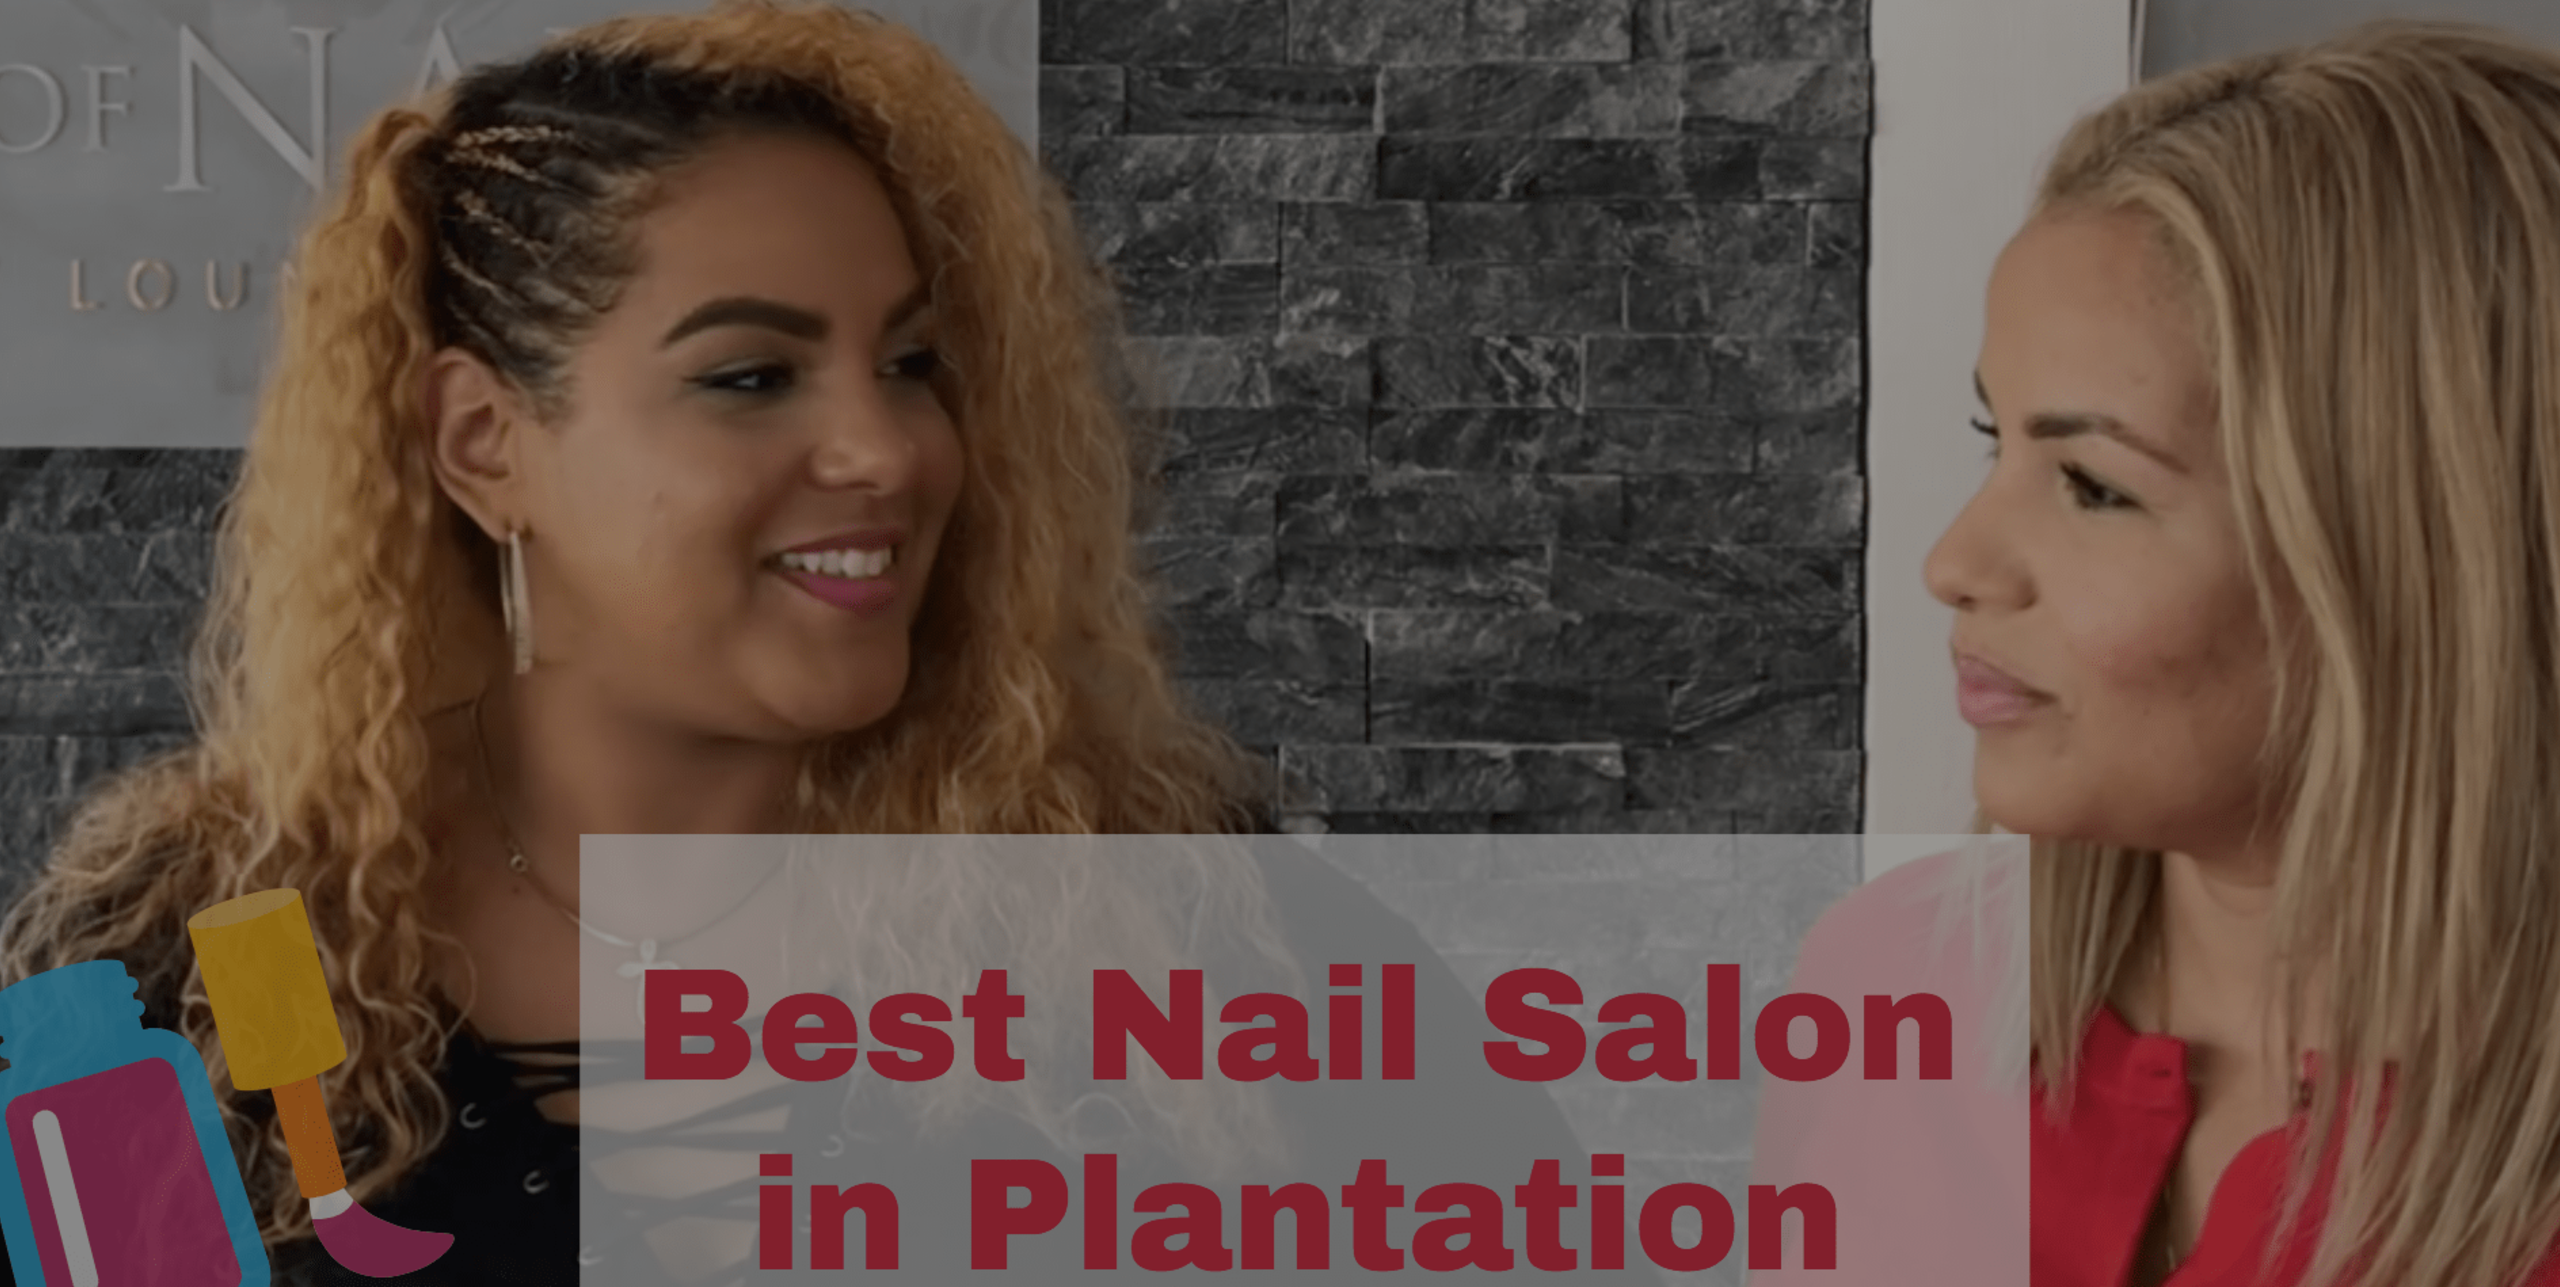 BEST LOCAL NAIL SALON SPOT IN PLANTATION